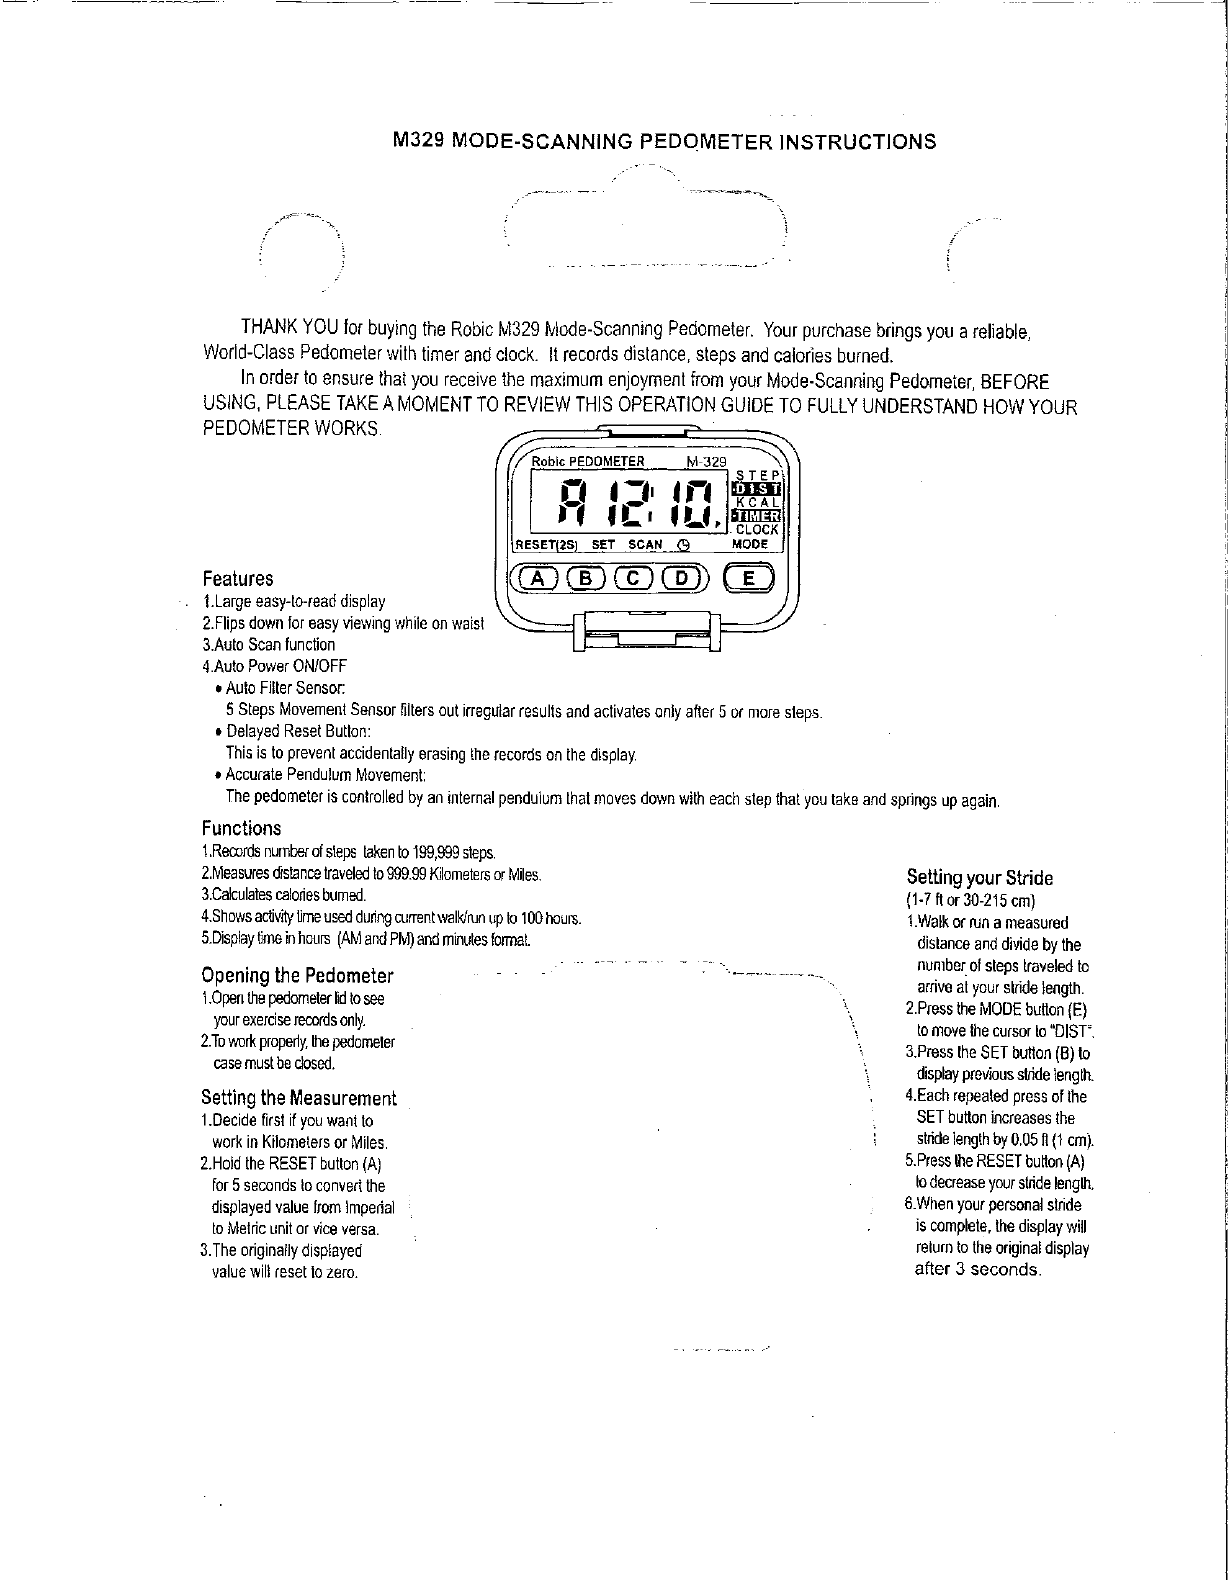 Robic M329 Fitness Electronics User Manual